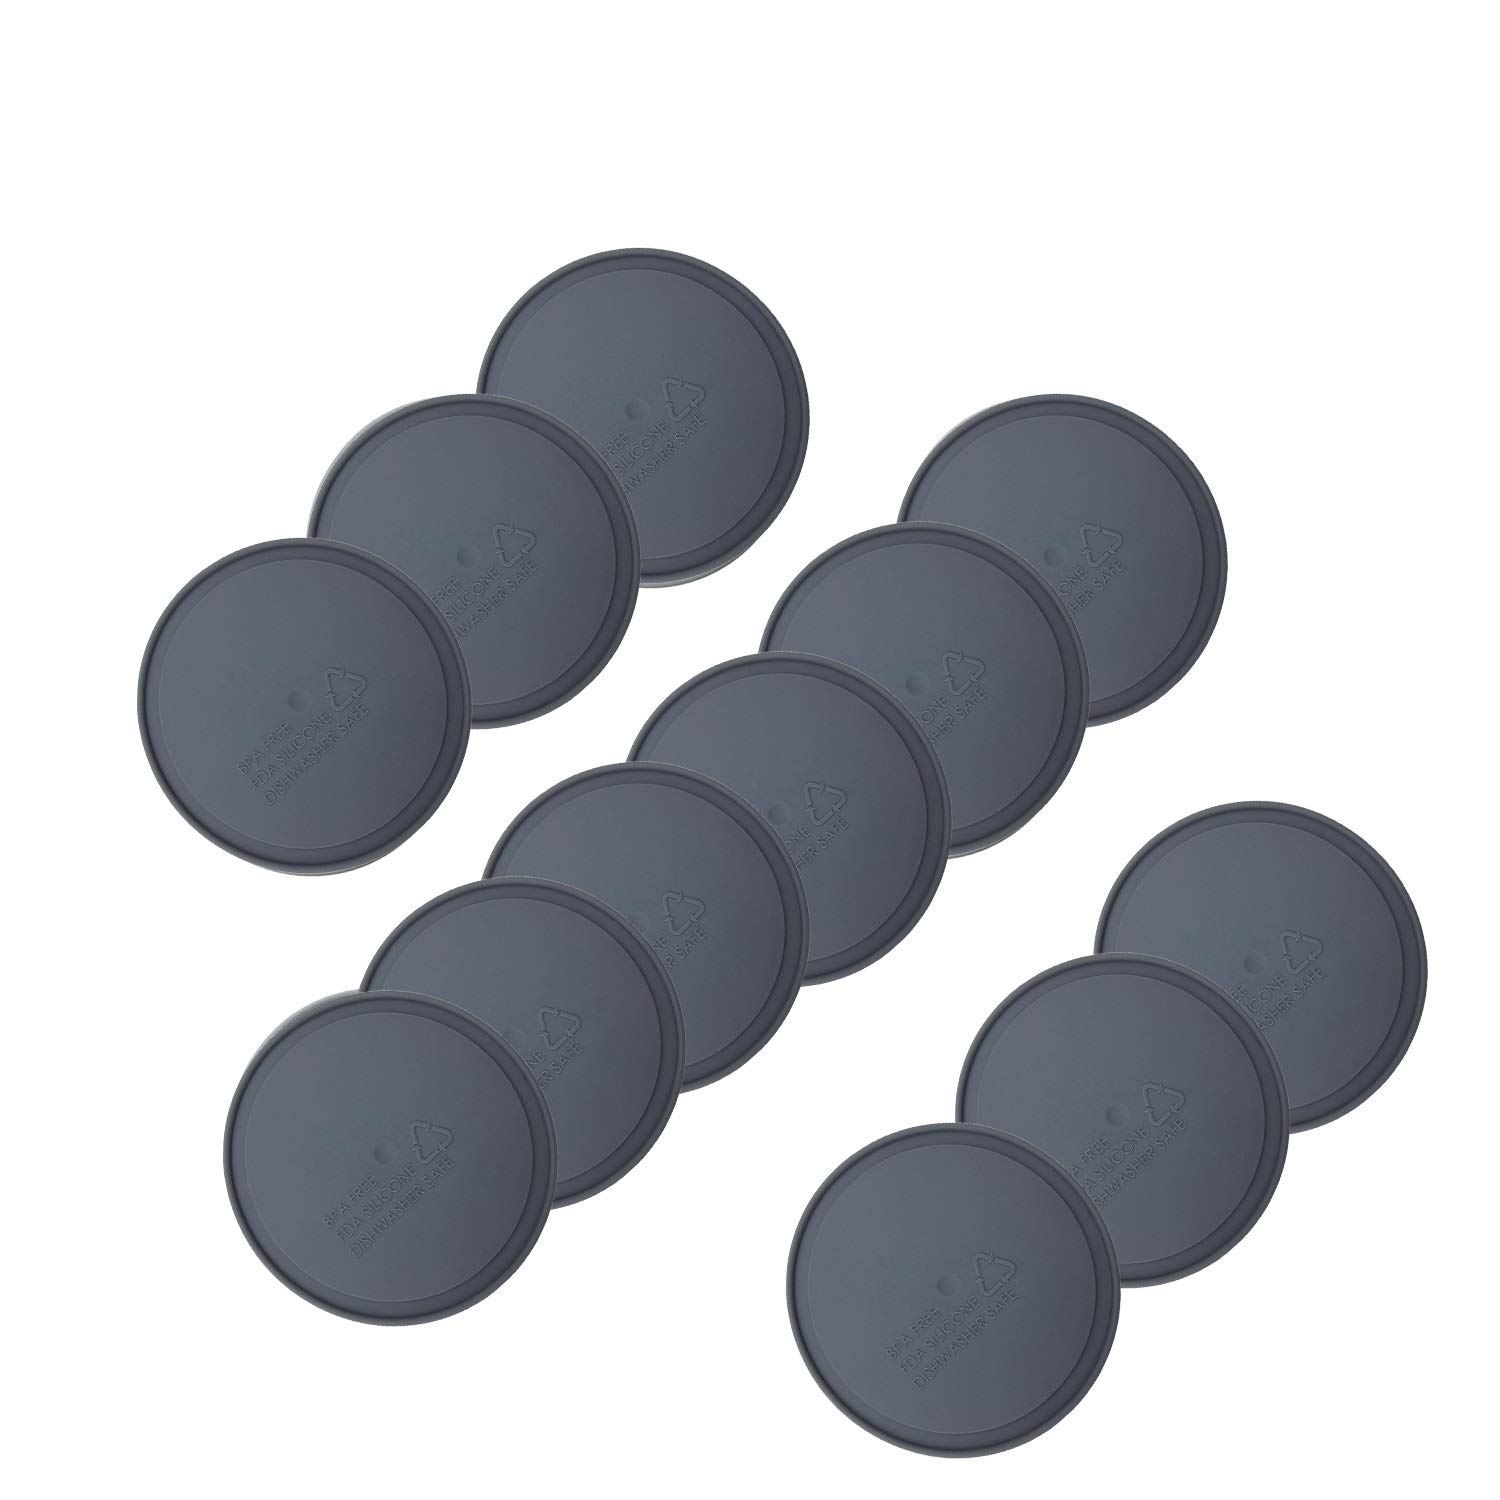 THINKCHANCES Leak Proof Food Safe and BPA Free Silicone Sealing Lid Inserts Liners for Mason, Ball, Canning Jars (Wide Mouth, Grey)